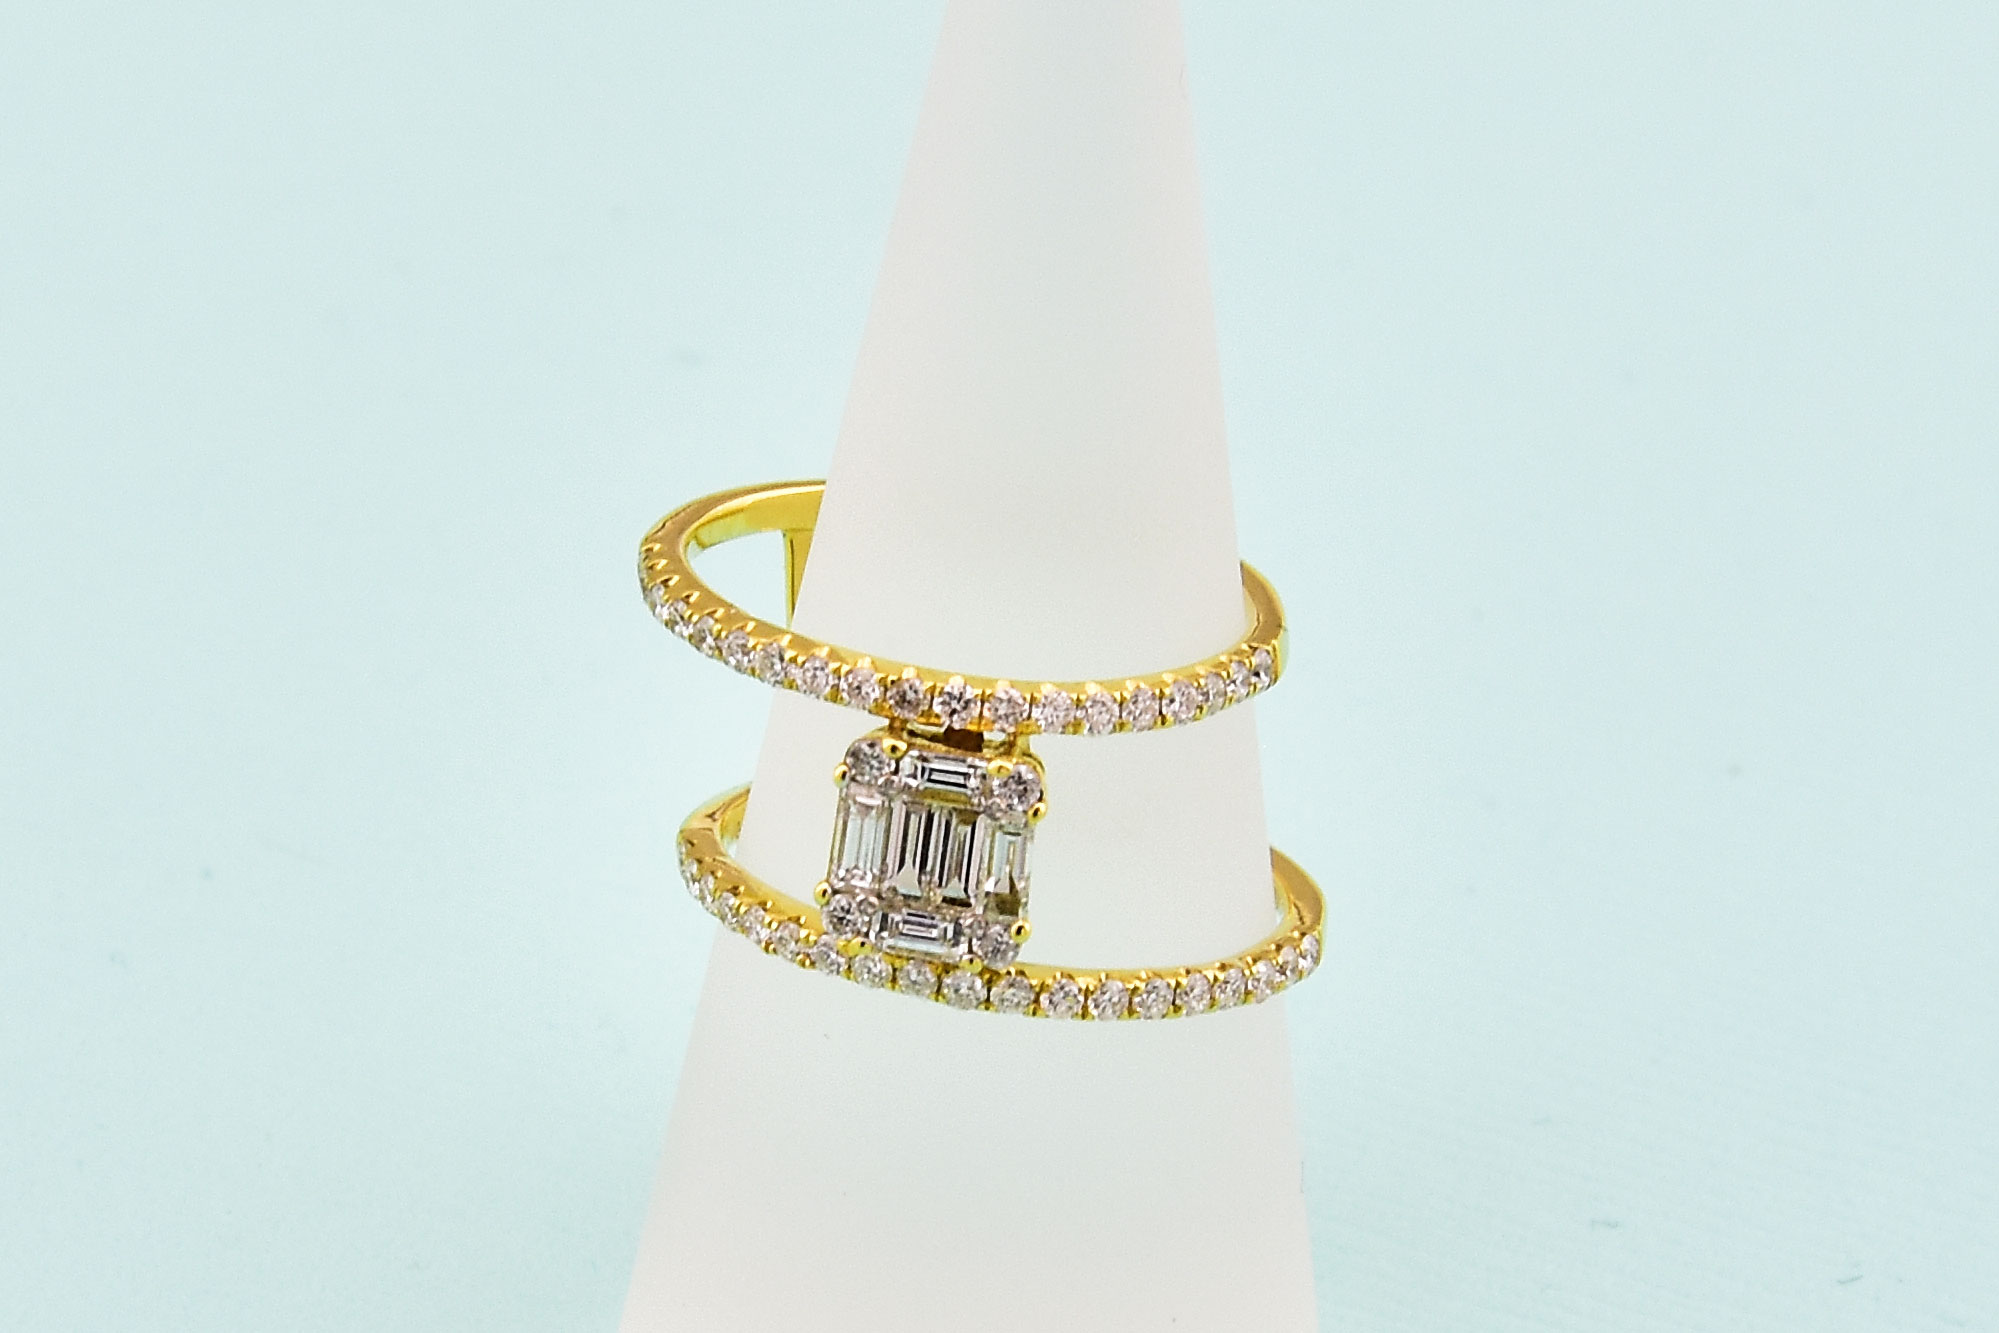 Almost 1 Carat Total Weight Diamond Ring